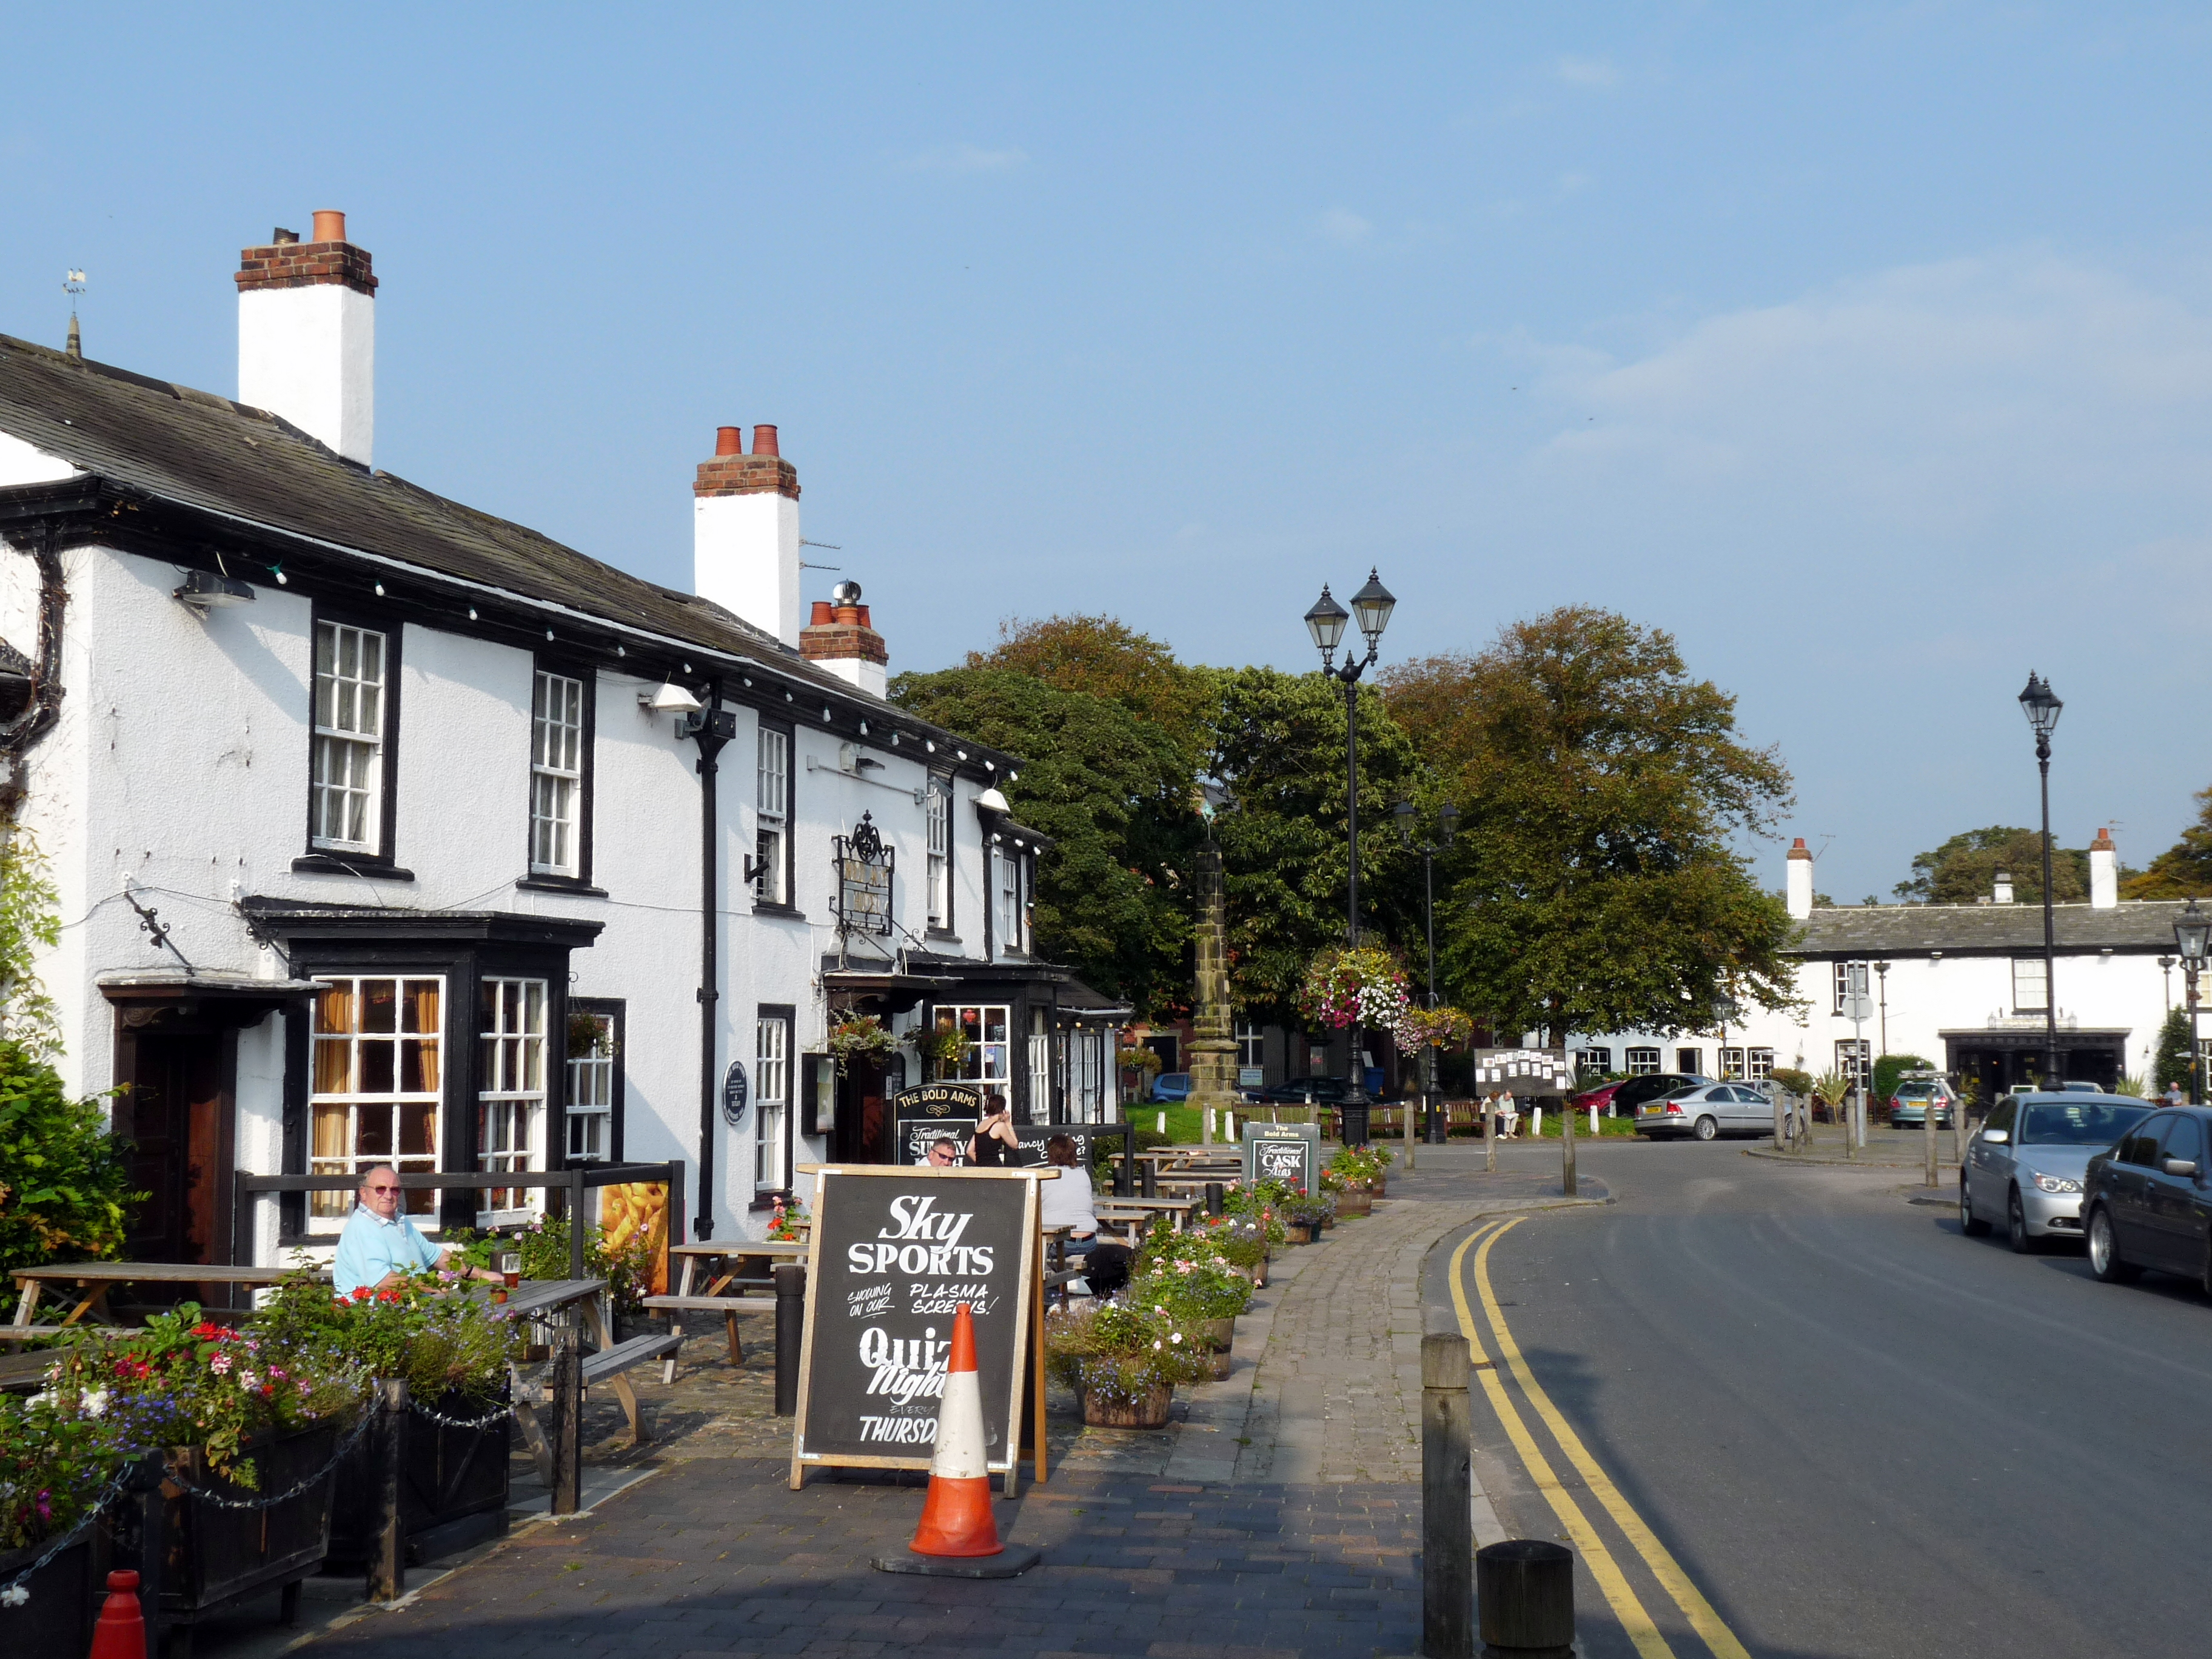 File:Churchtown, Southport.jpg - Wikimedia Commons